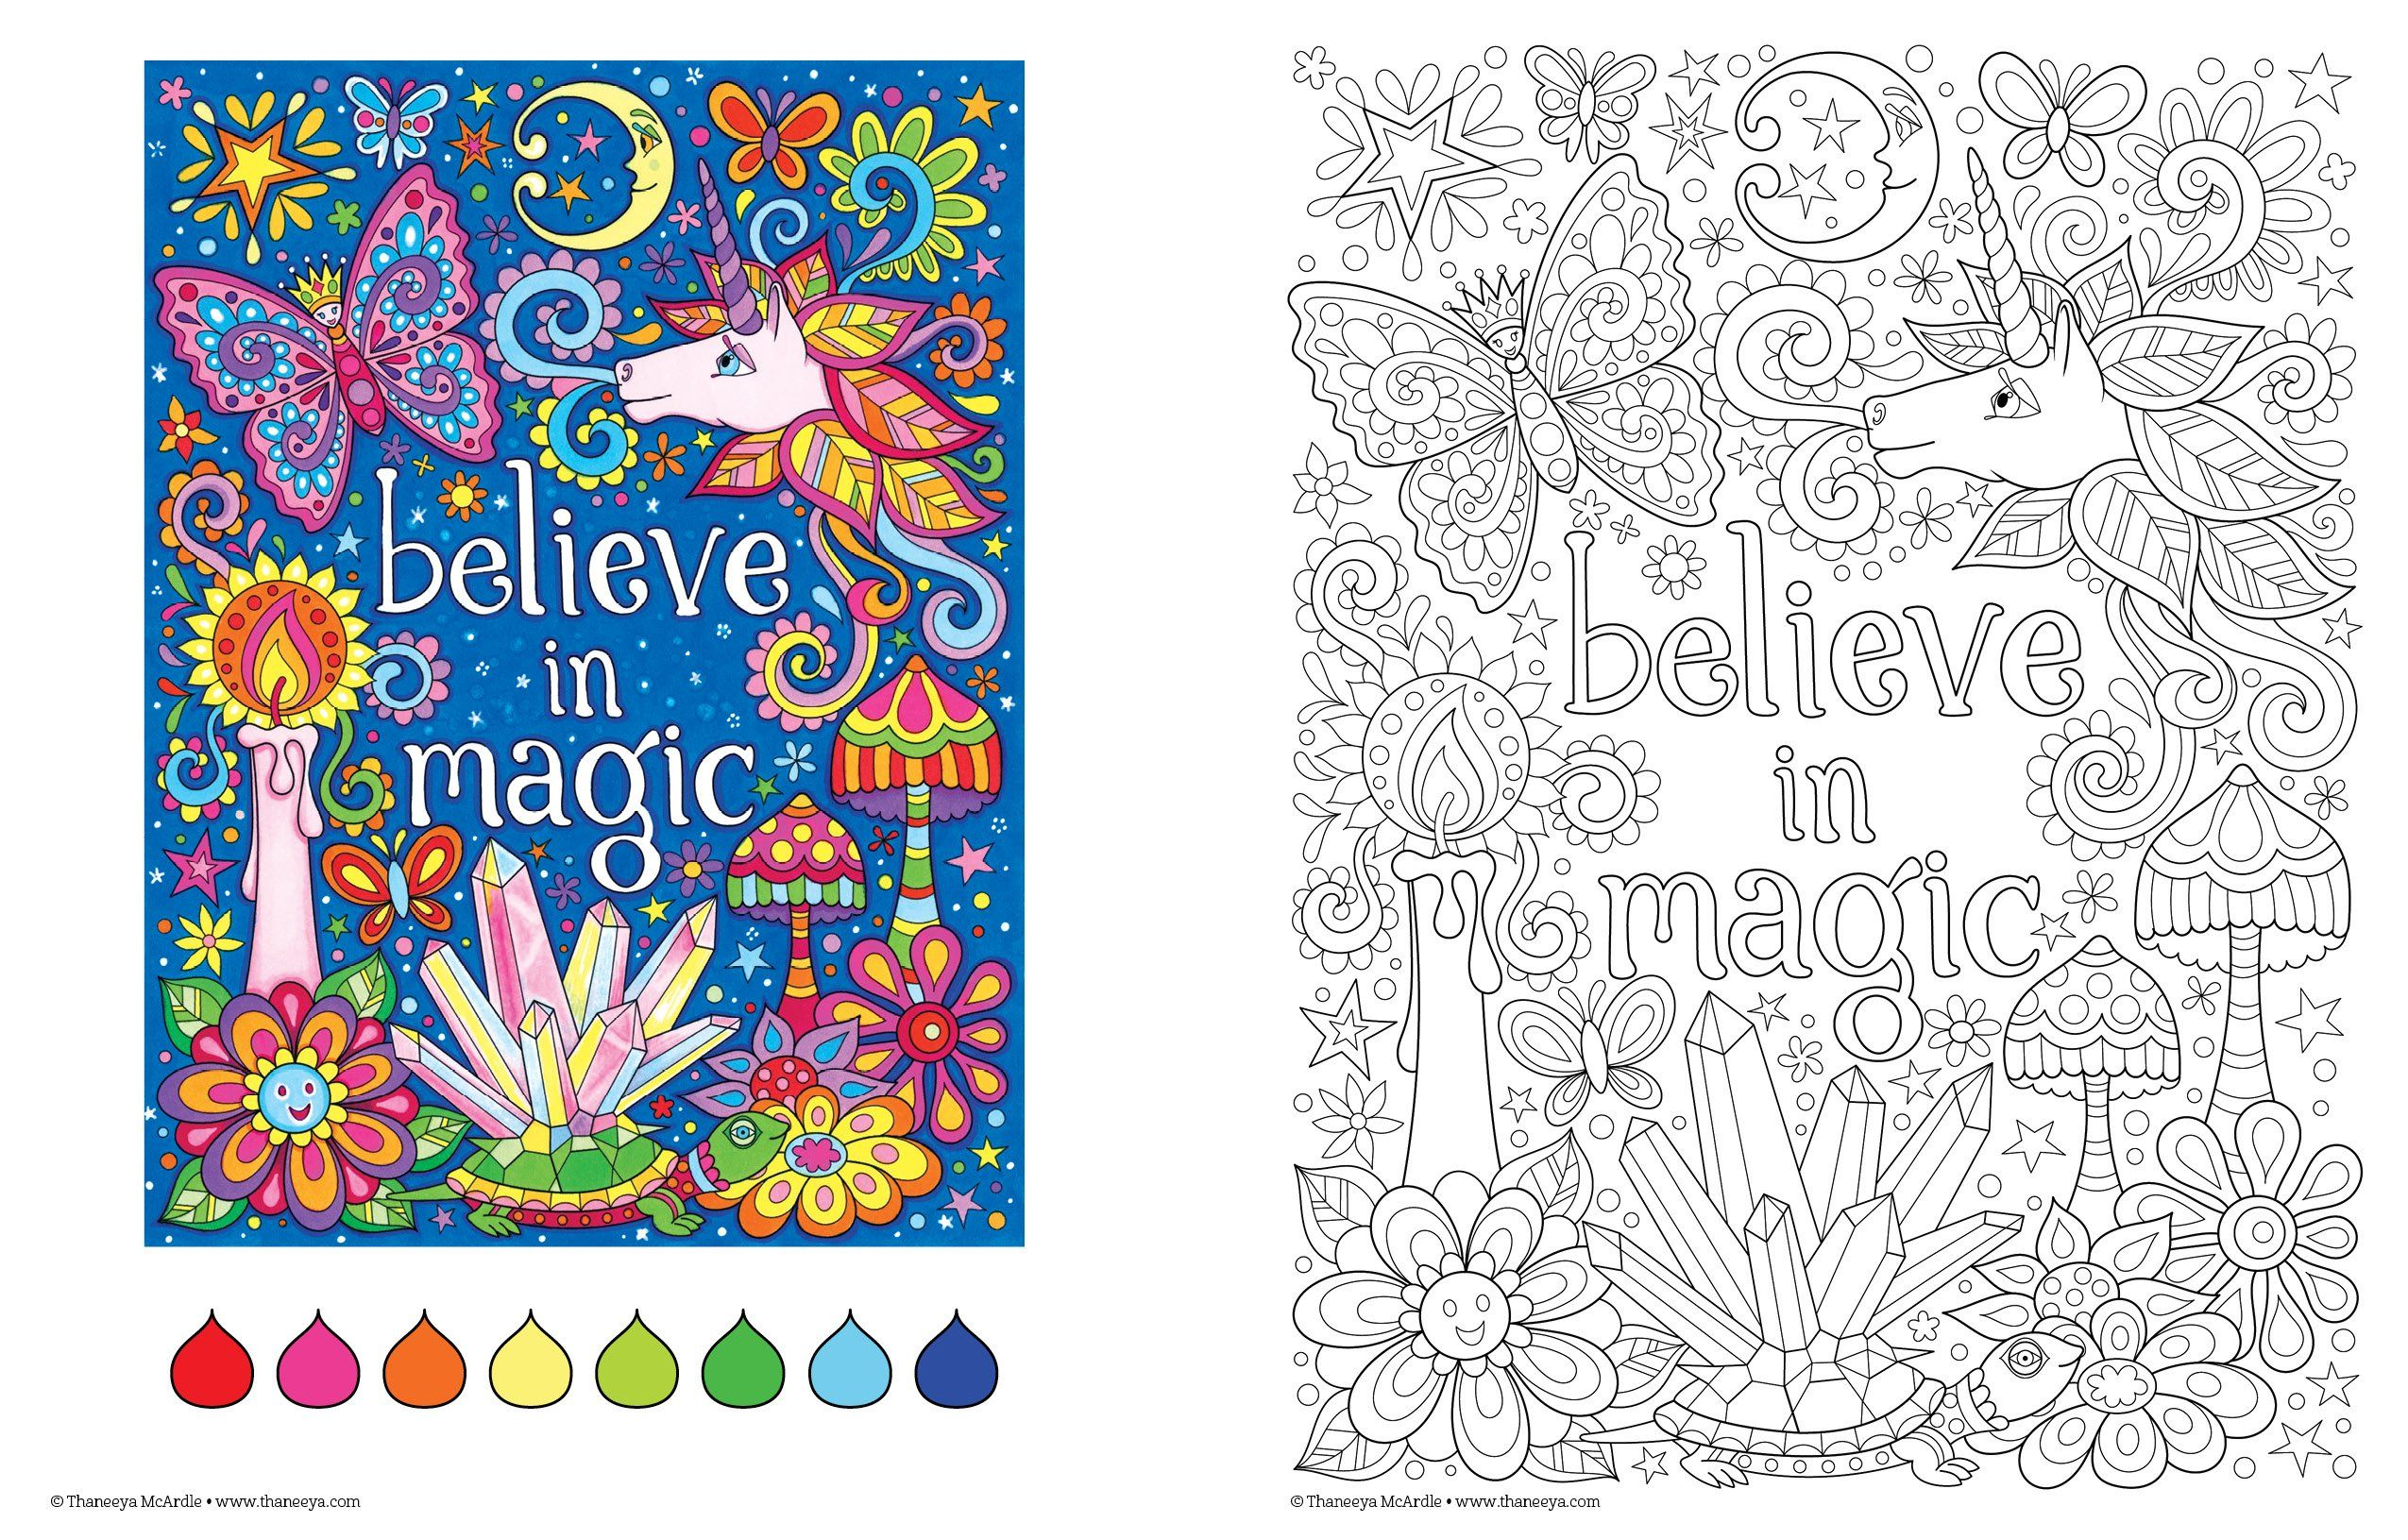 Buy Free Spirit Coloring Book Coloring Is Fun Book Online At Low Prices In India Free Spirit Coloring Coloring Books Relaxing Coloring Book Art Activities